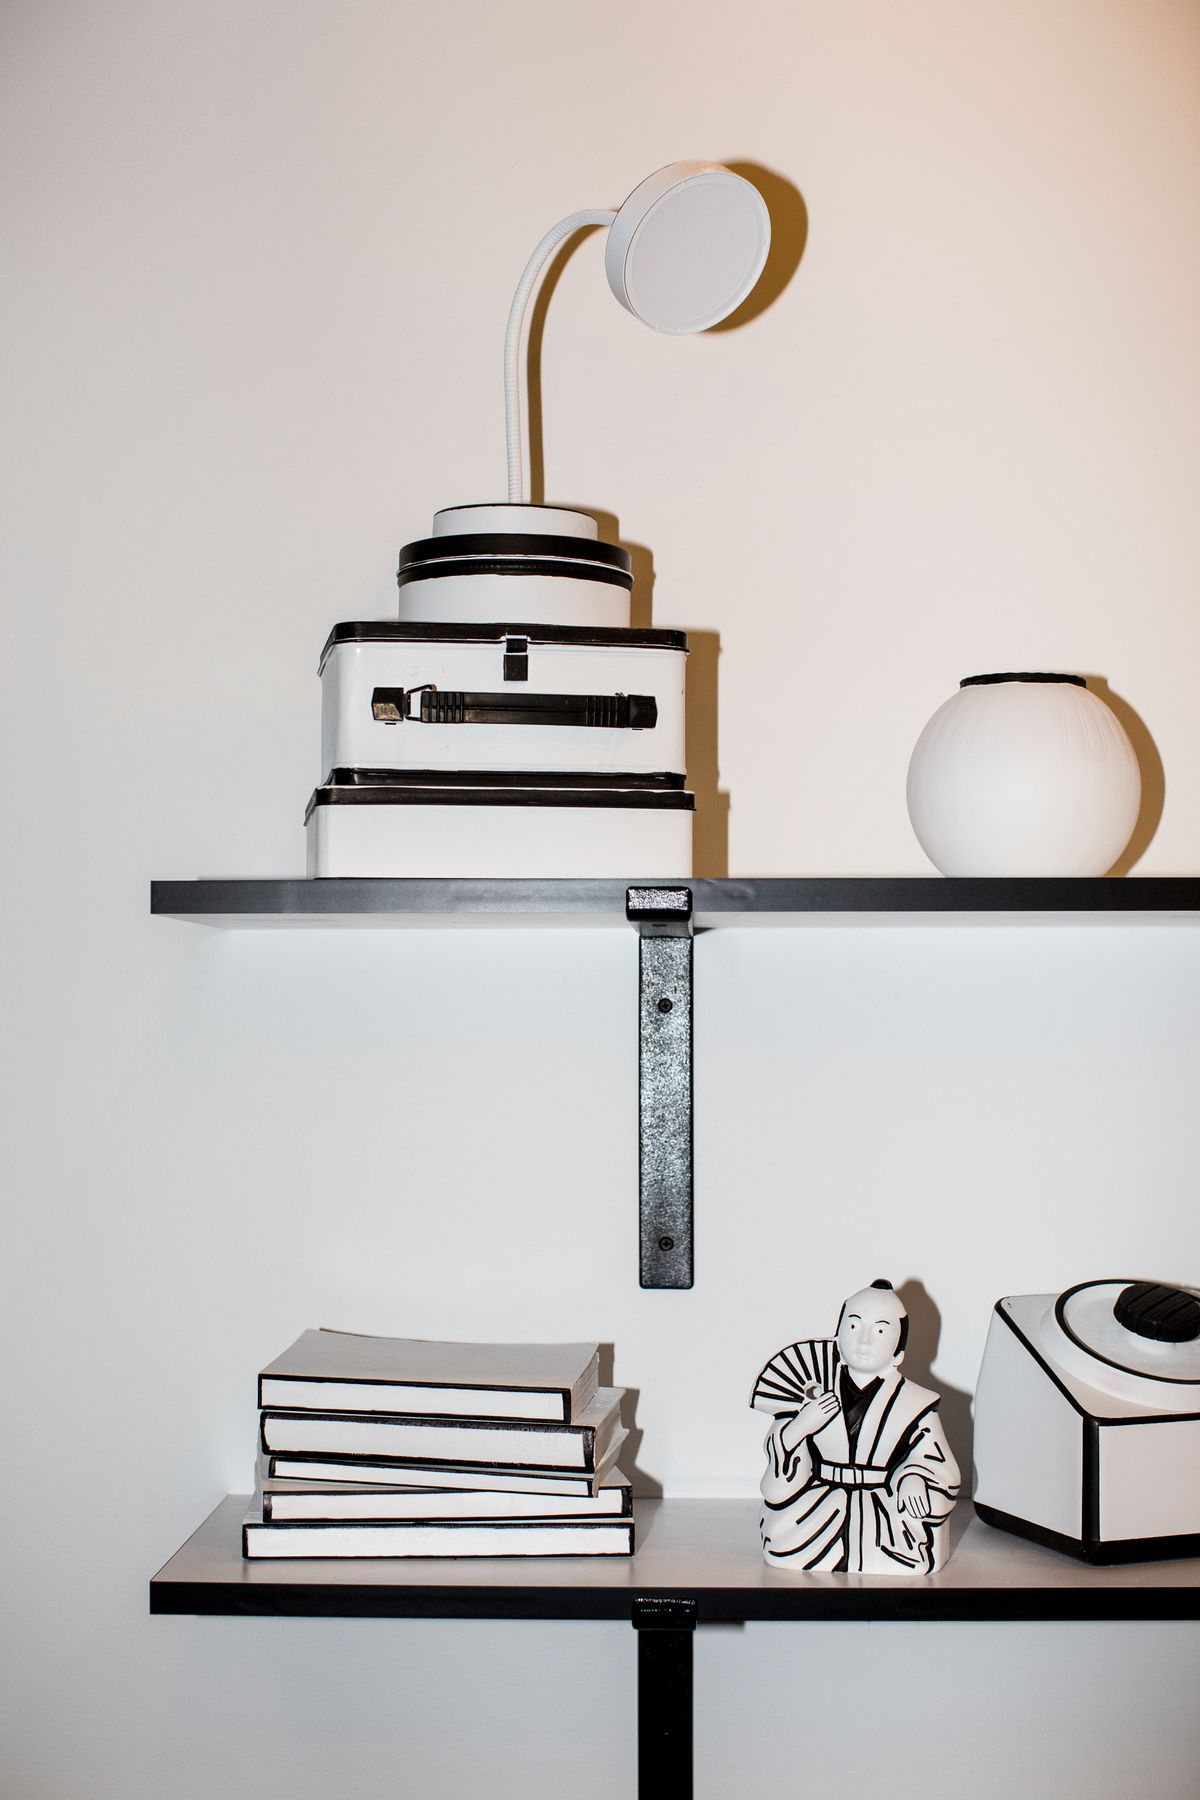 Dream Machine black and white shelf with a lamp, boxes, a pot, a stack of books, and other knick-knack decor.